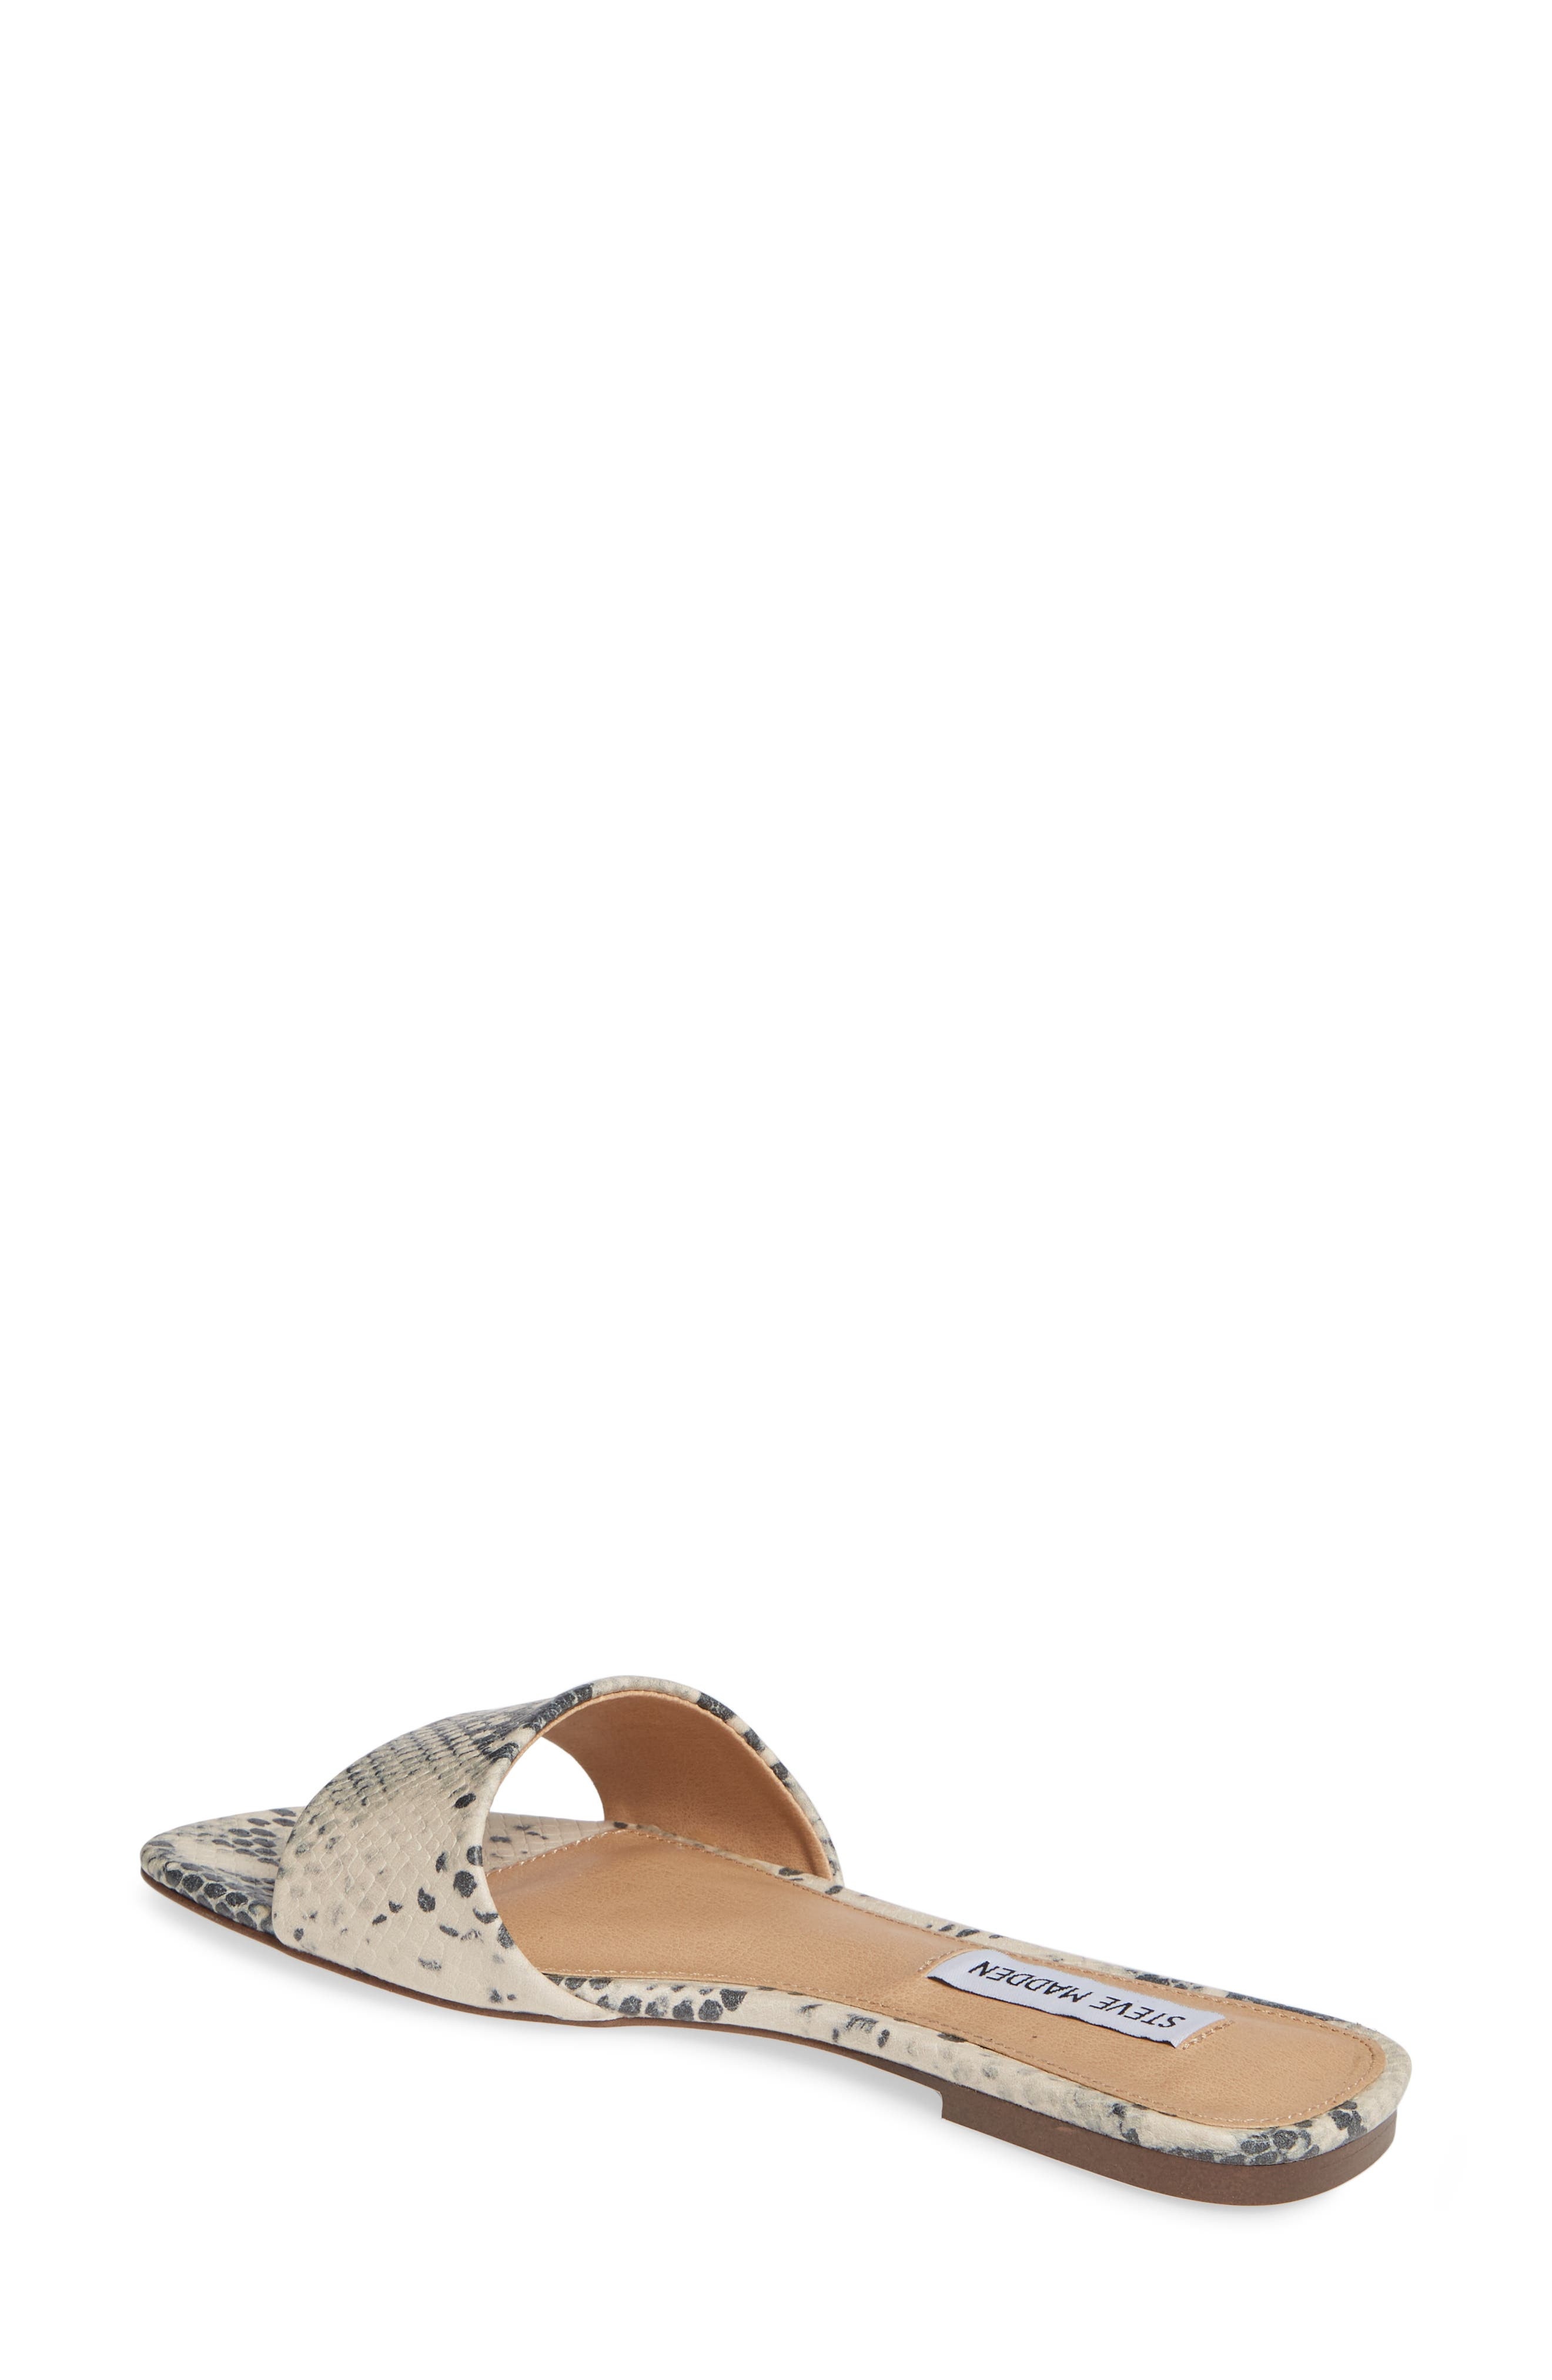 5dec23bec43 Women's Brown New Arrivals: Clothing, Shoes & Beauty   Nordstrom